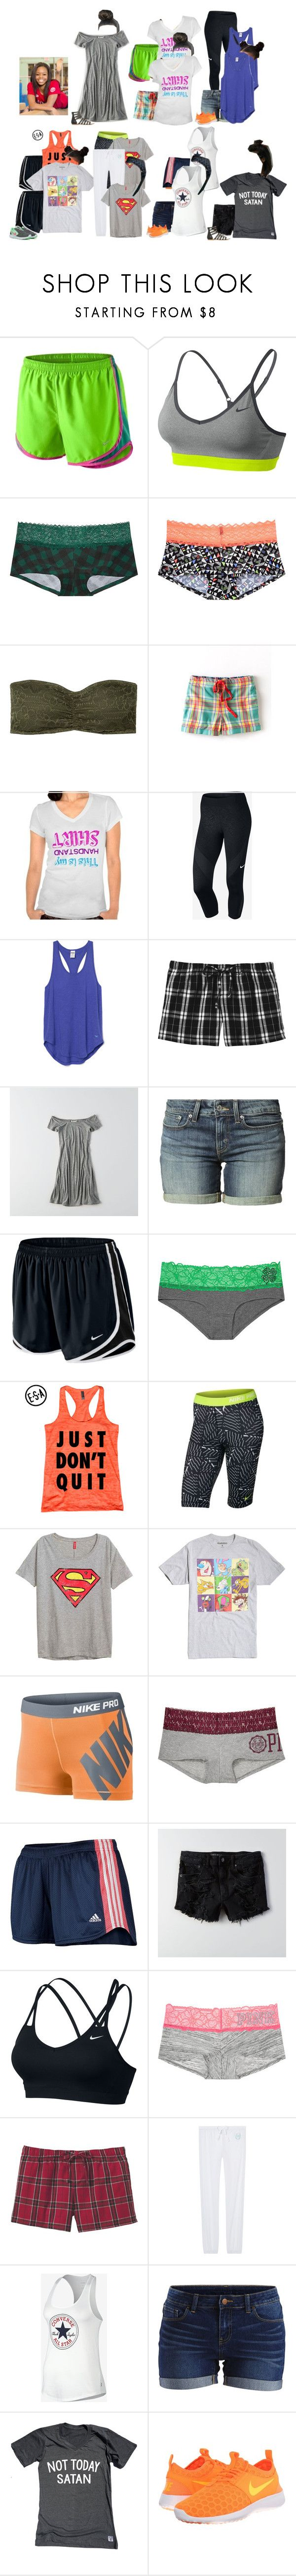 """""""Alysha This Week"""" by thesummitfam ❤ liked on Polyvore featuring NIKE, Victoria's Secret, Boden, American Eagle Outfitters, Levi's, Nickelodeon, adidas, VILA, Disney and Coleman"""